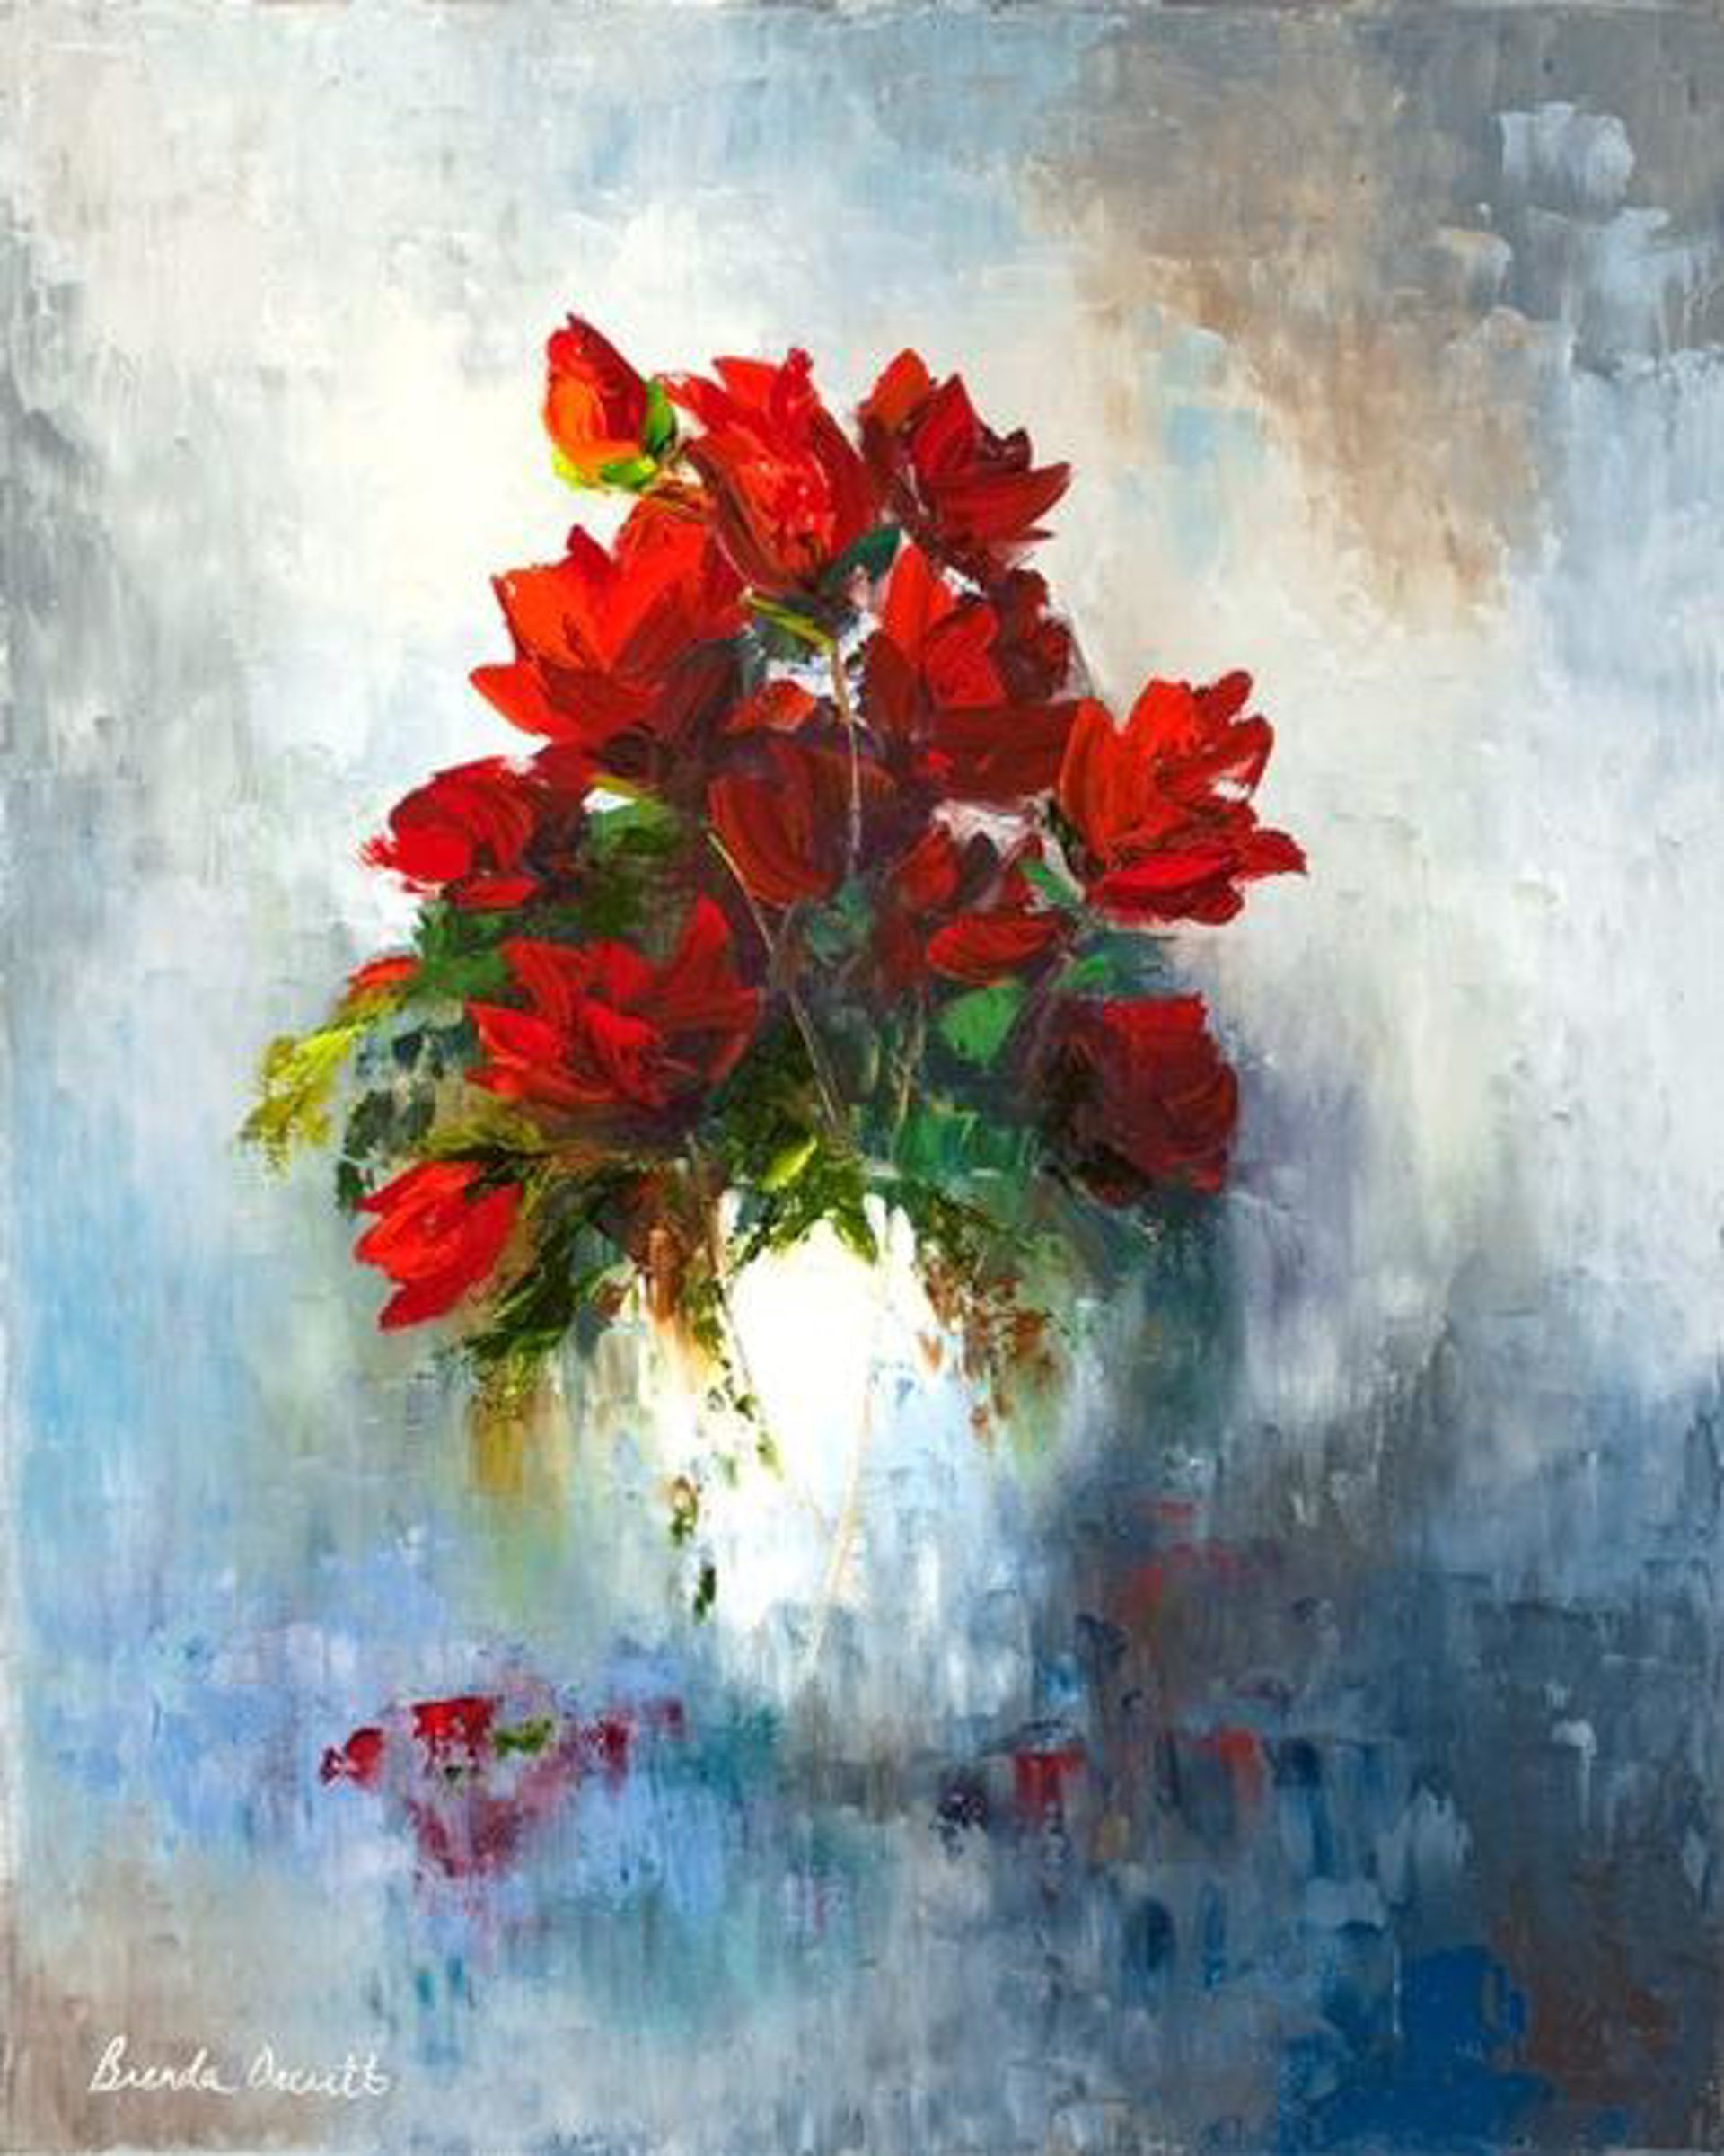 Crimson and Porcelain by Brenda Orcutt, Giclee--Prints